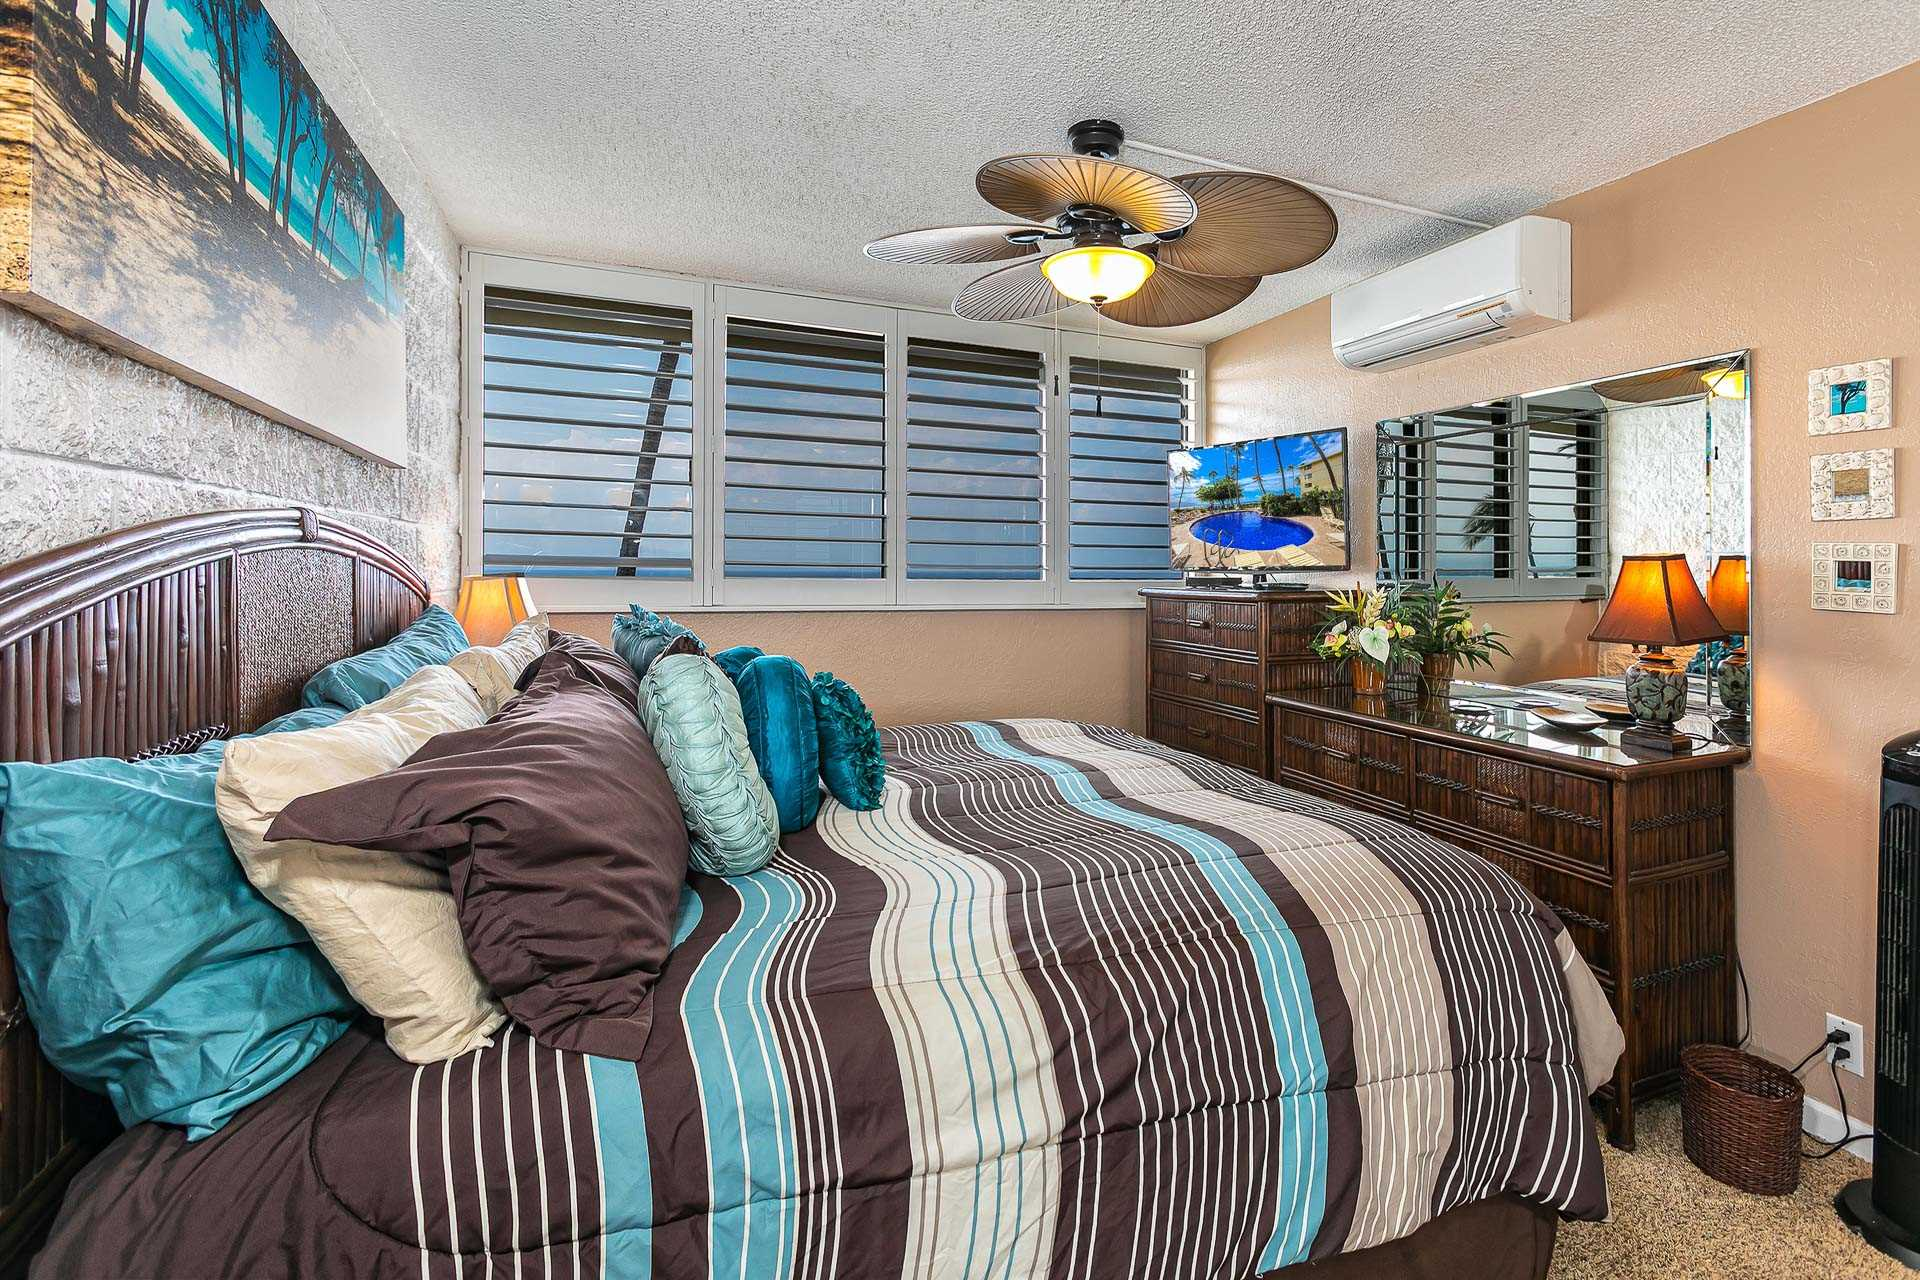 Master bedroom has a comfortable King size bed